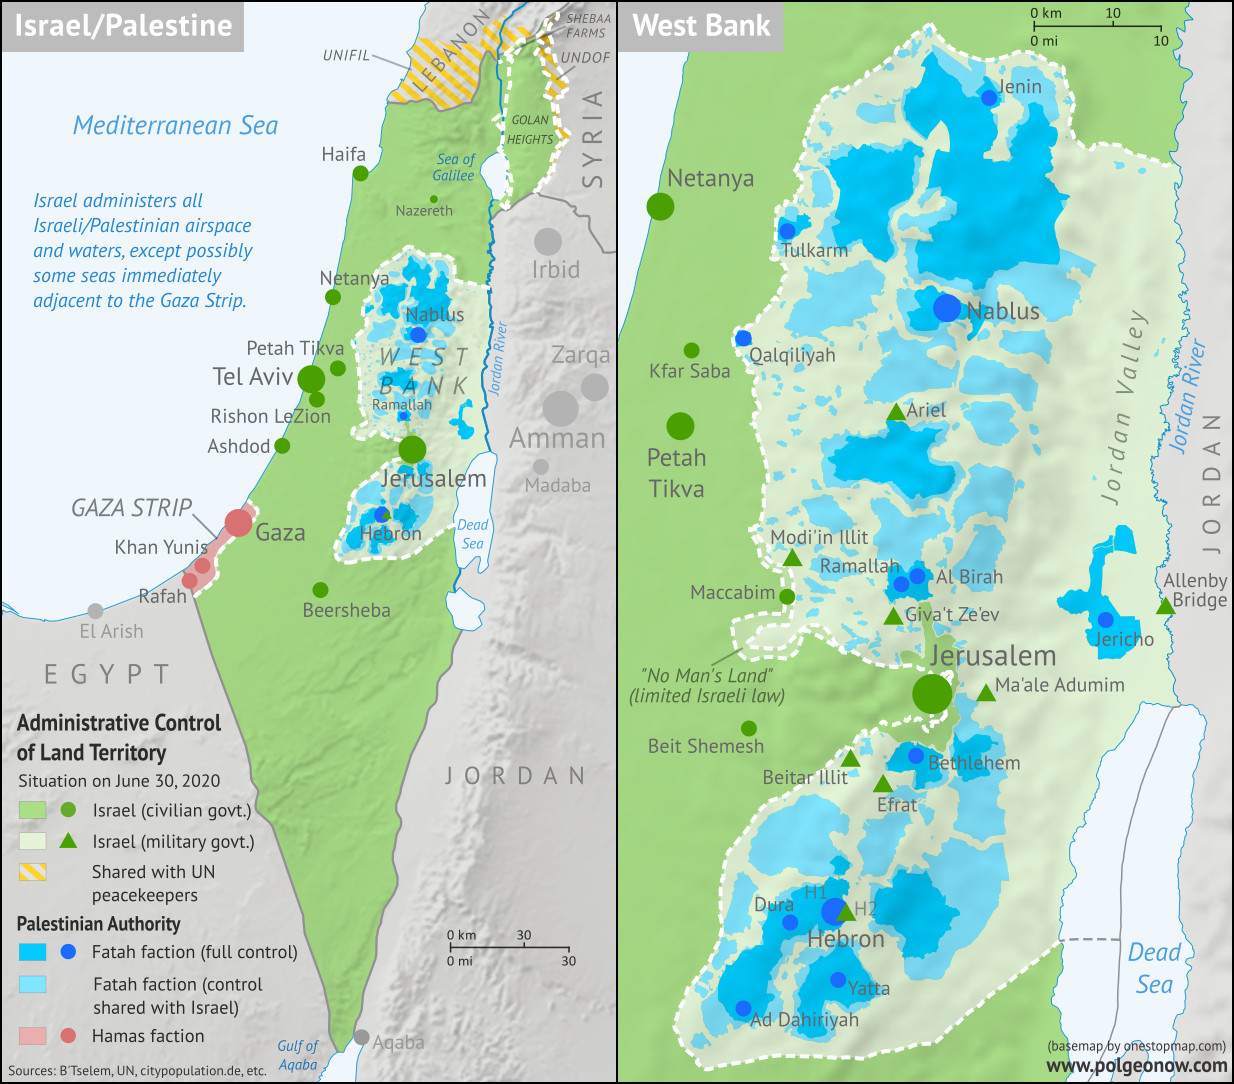 Who controls Palestine and Israel's claimed territories today (June 30, 2020), just before Israel's planned annexation of parts of the West Bank? Also file under: Palestine controlled area map. Includes bigger West Bank map (Areas A, B, C). Map also includes Gaza Strip, Golan Heights, major cities and Israeli settlements, UN peacekeeper deployments (UNIFIL and UNDOF), no man's land, Golan Heights buffer zone (area of separation, AOS), and Shebaa Farms. Colorblind accessible.